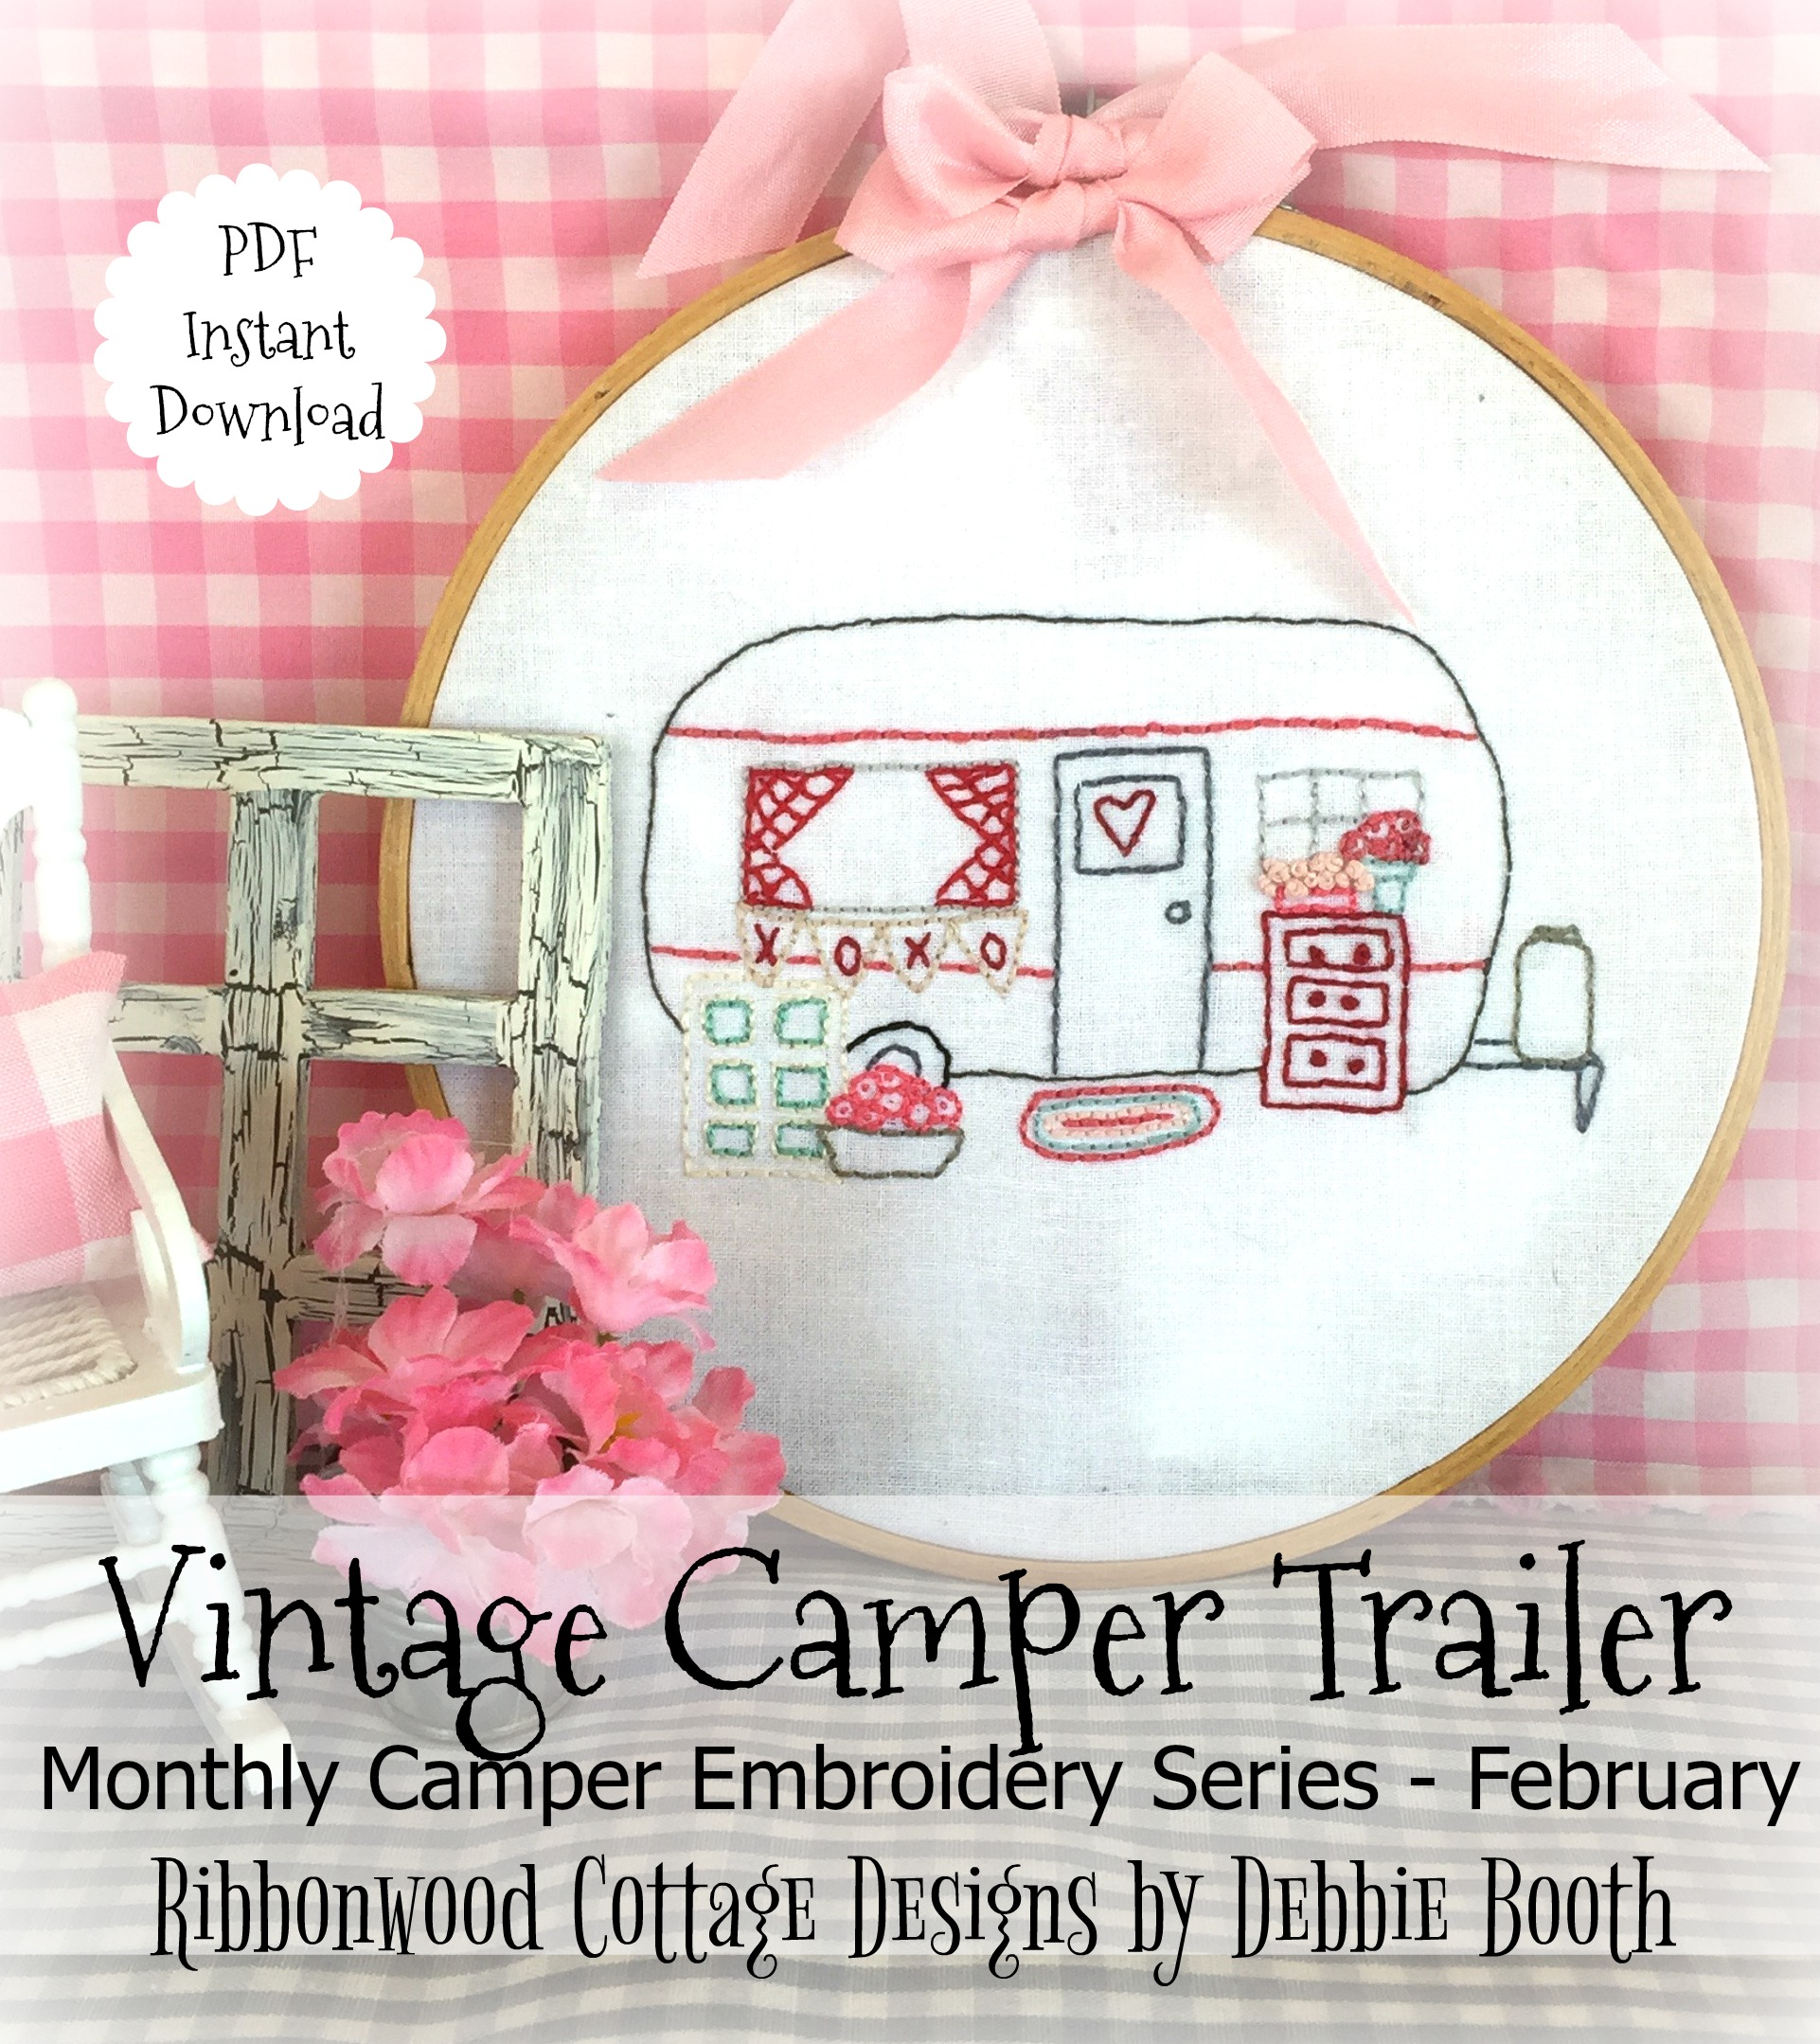 February Vintage Camper Trailer Embroidery Monthly Series